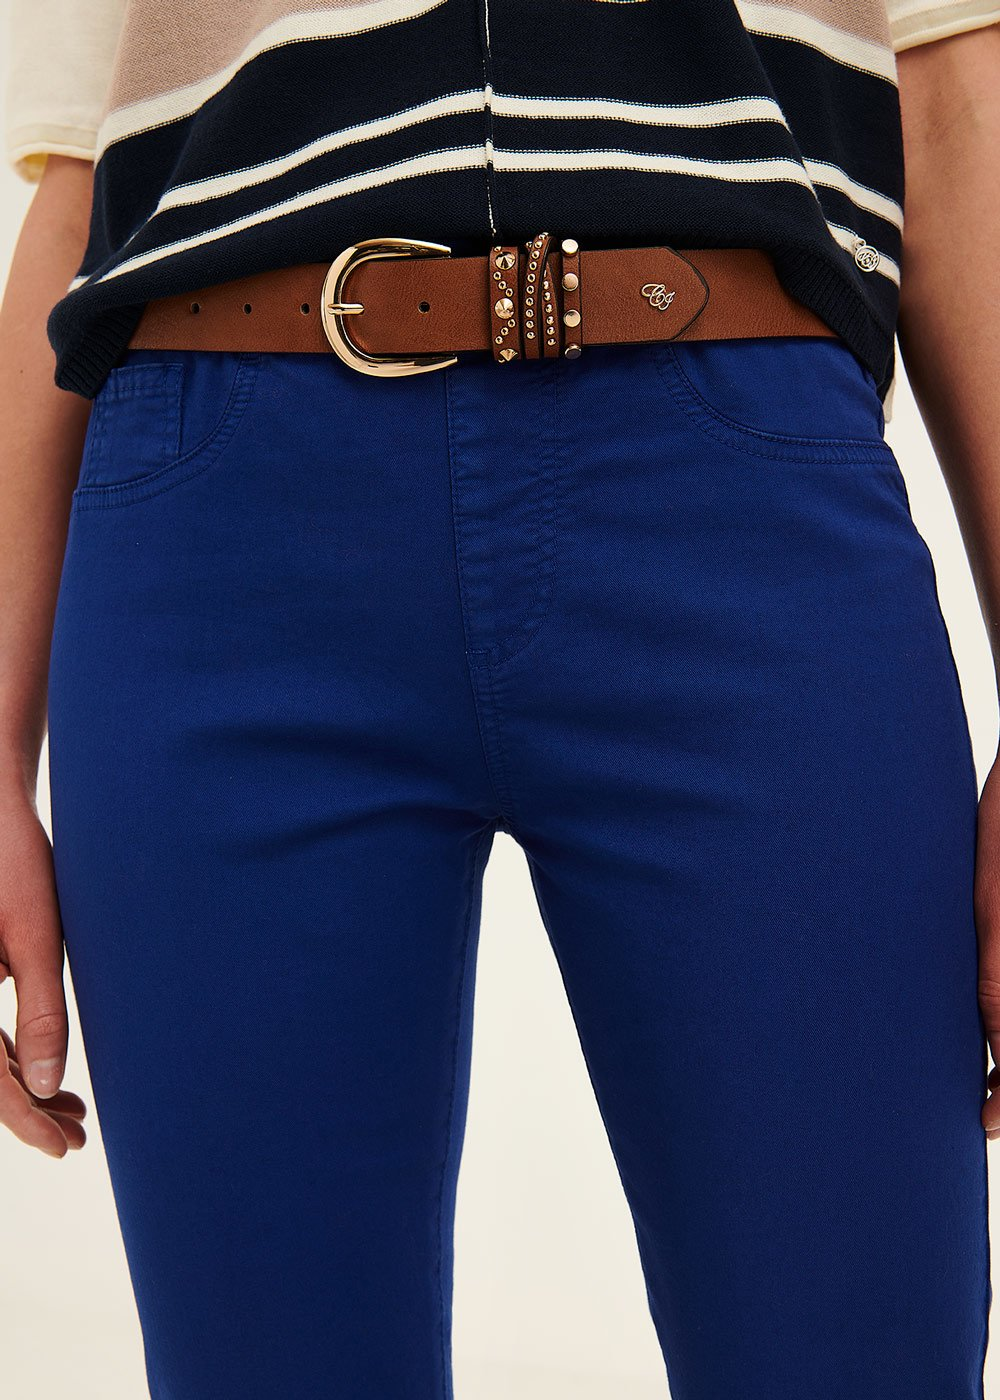 Chili faux-leather belt with detail of studs - Pecan - Woman